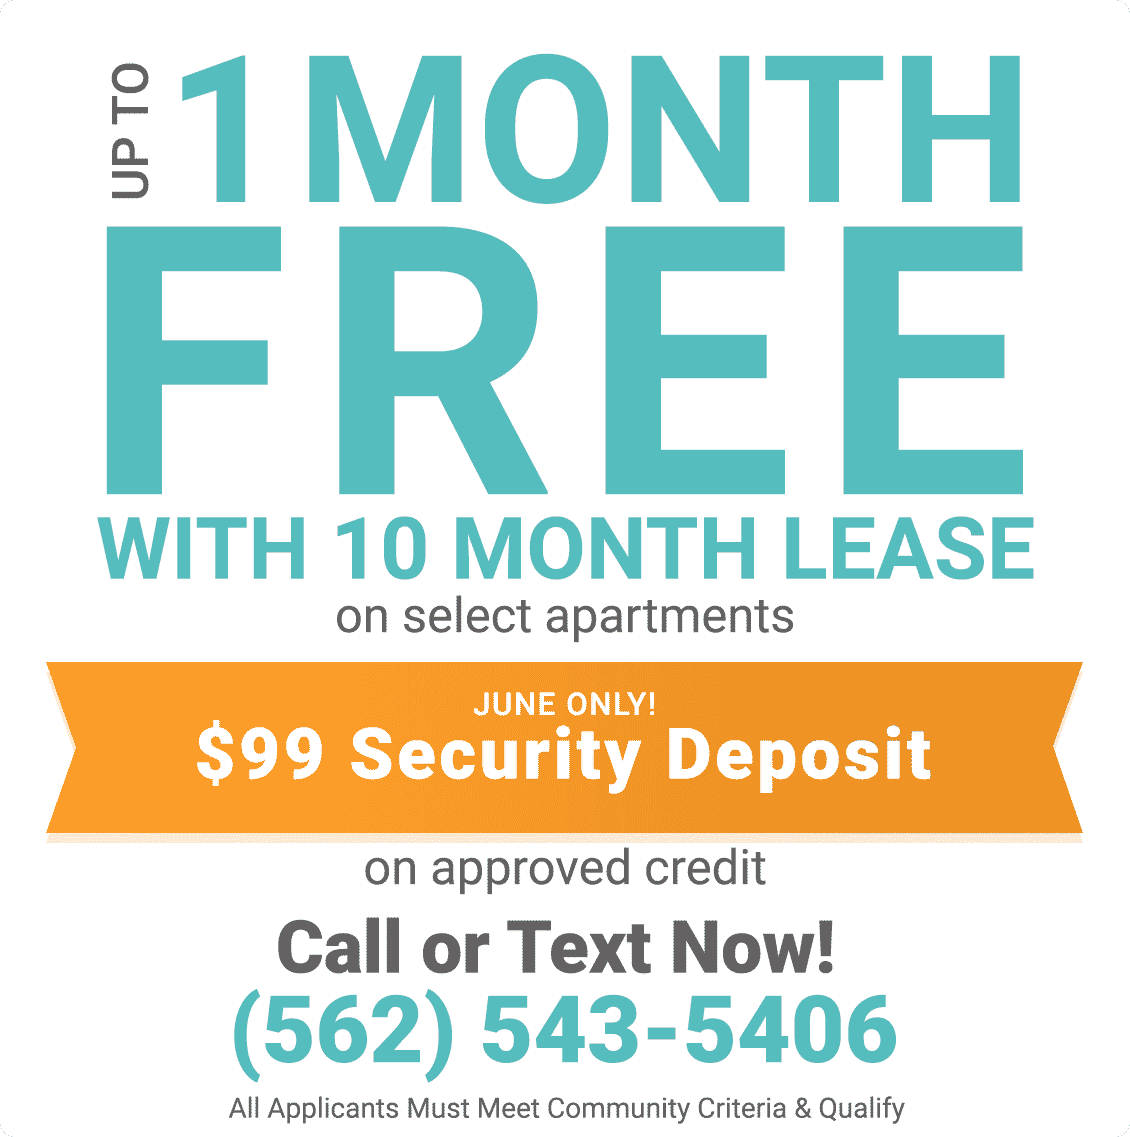 Up to 1 month free with 10 month lease on select apartments on approved credit